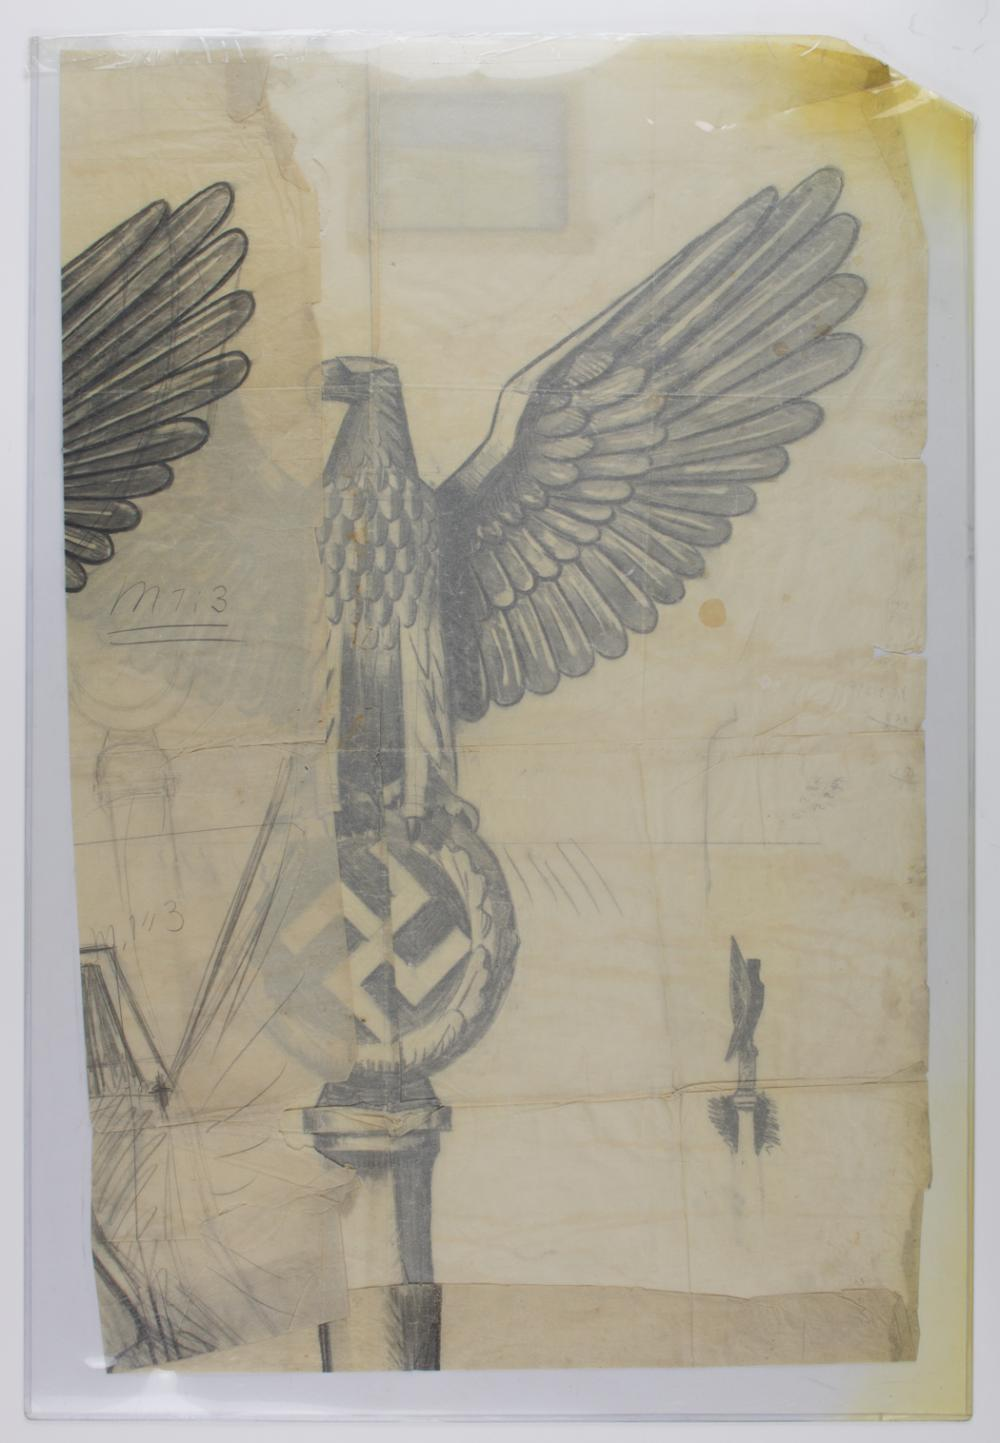 KURT SCHMID EHMEN ARCHIVE - CREATOR OF THE NAZI EAGLE